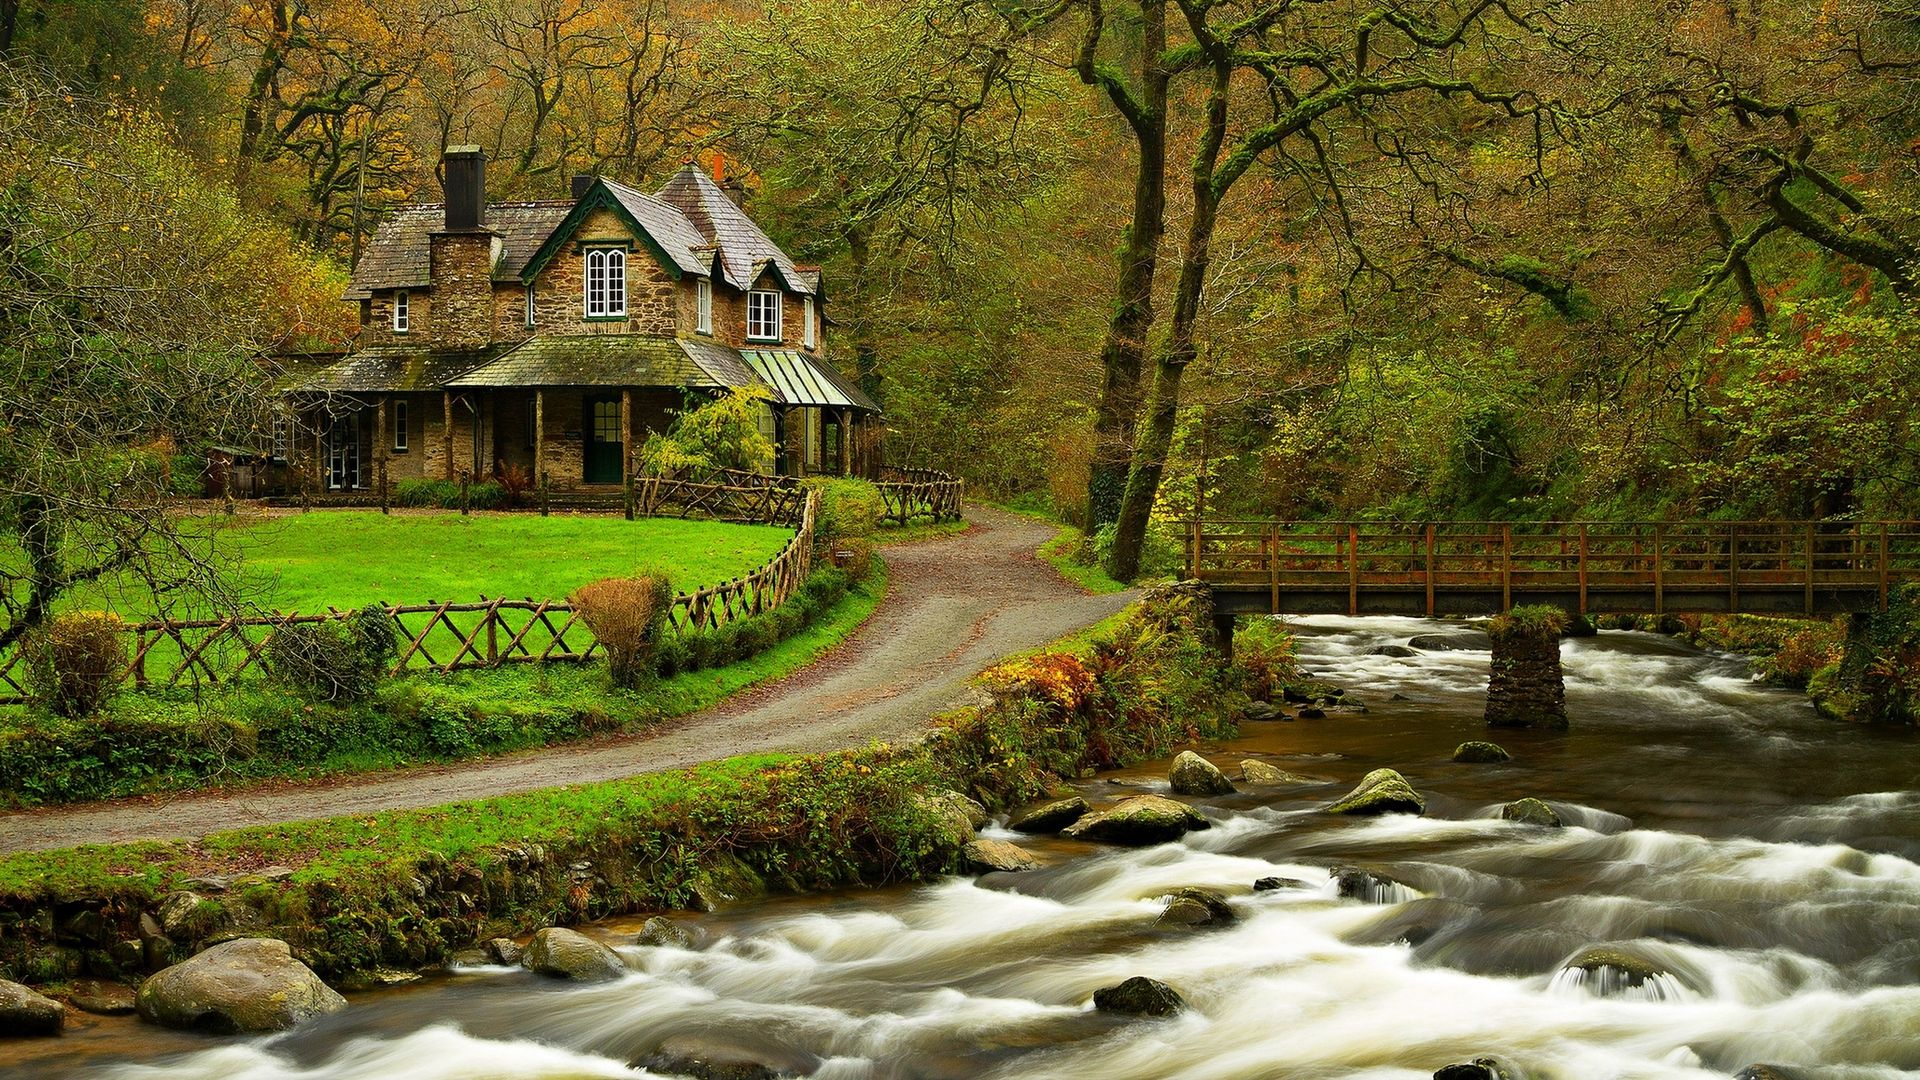 House in the woods for 1920 x 1080 hdtv 1080p resolution for Wallpaper with houses on it